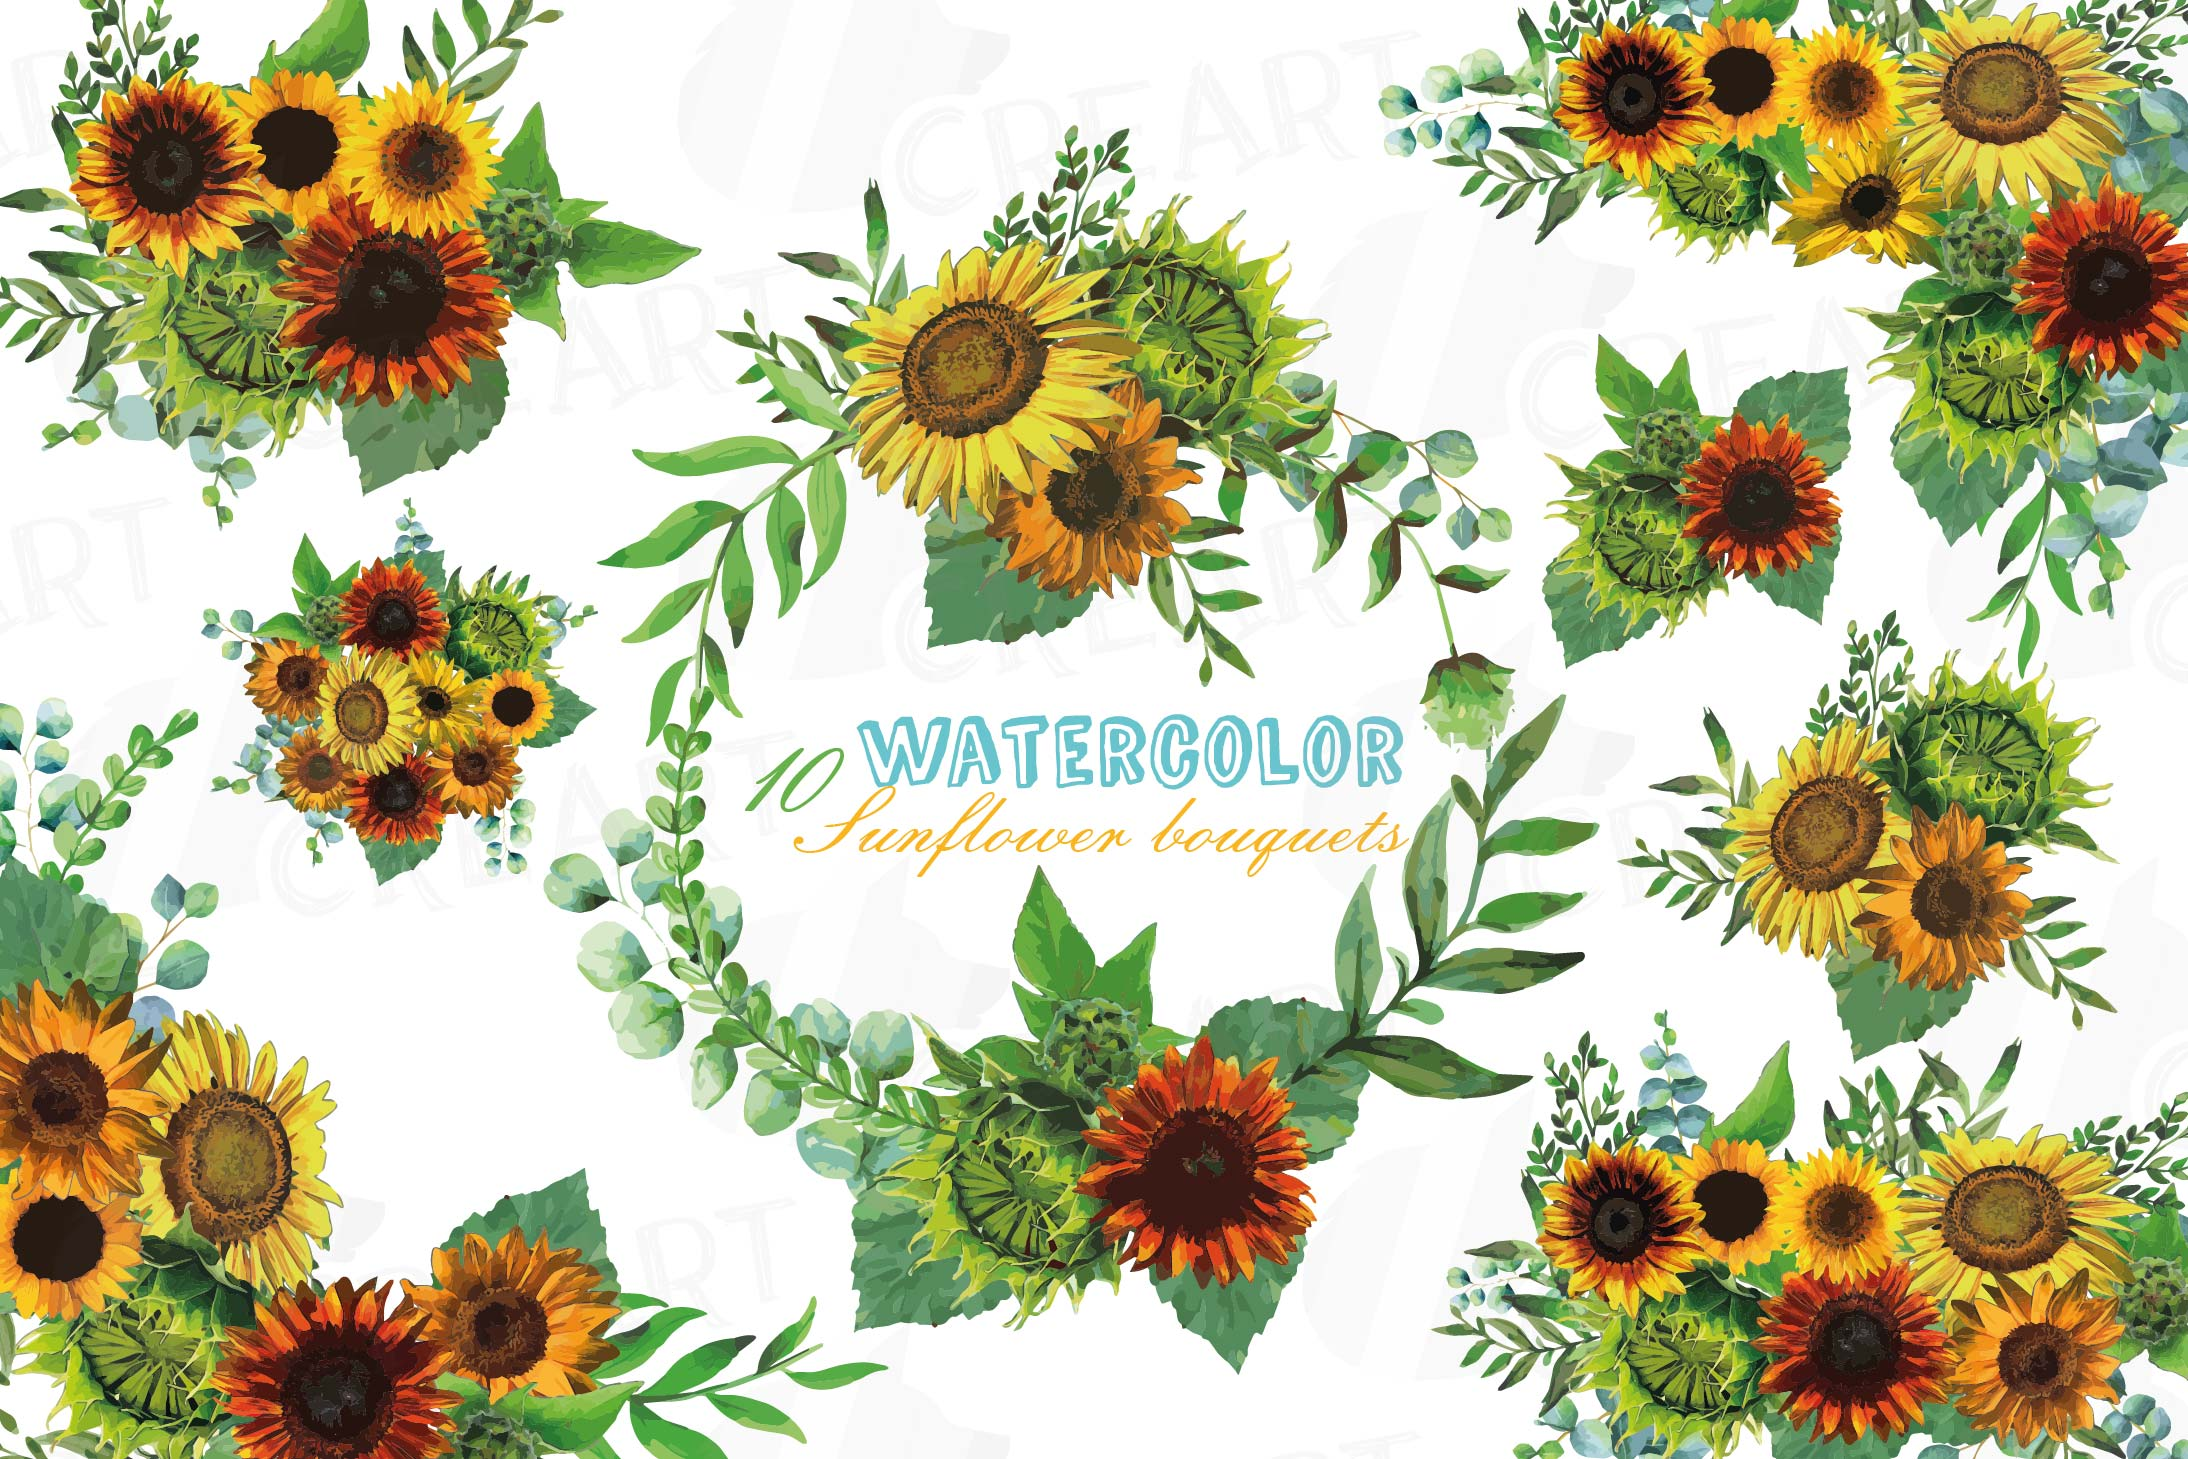 Watercolor sunflower bouquets and design elements example image 1